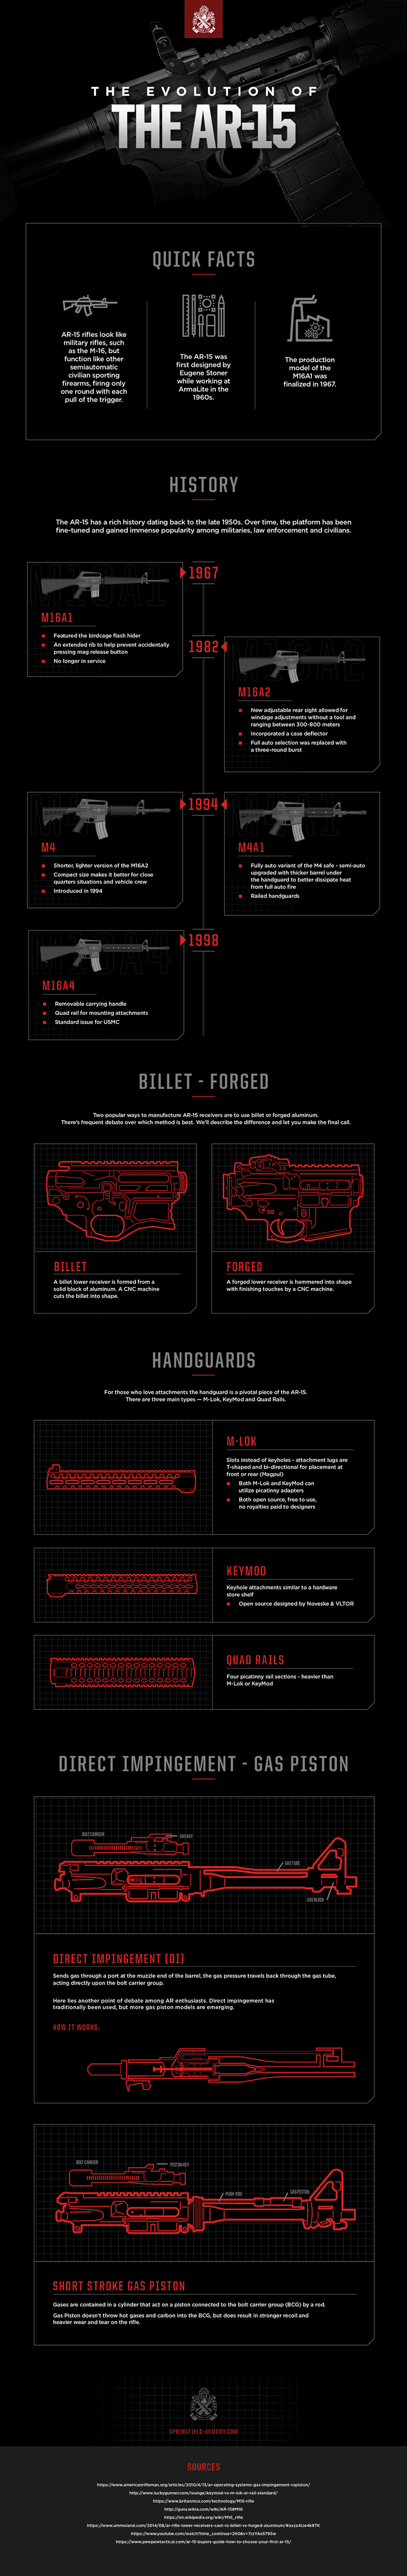 History of the AR-15 Graphic